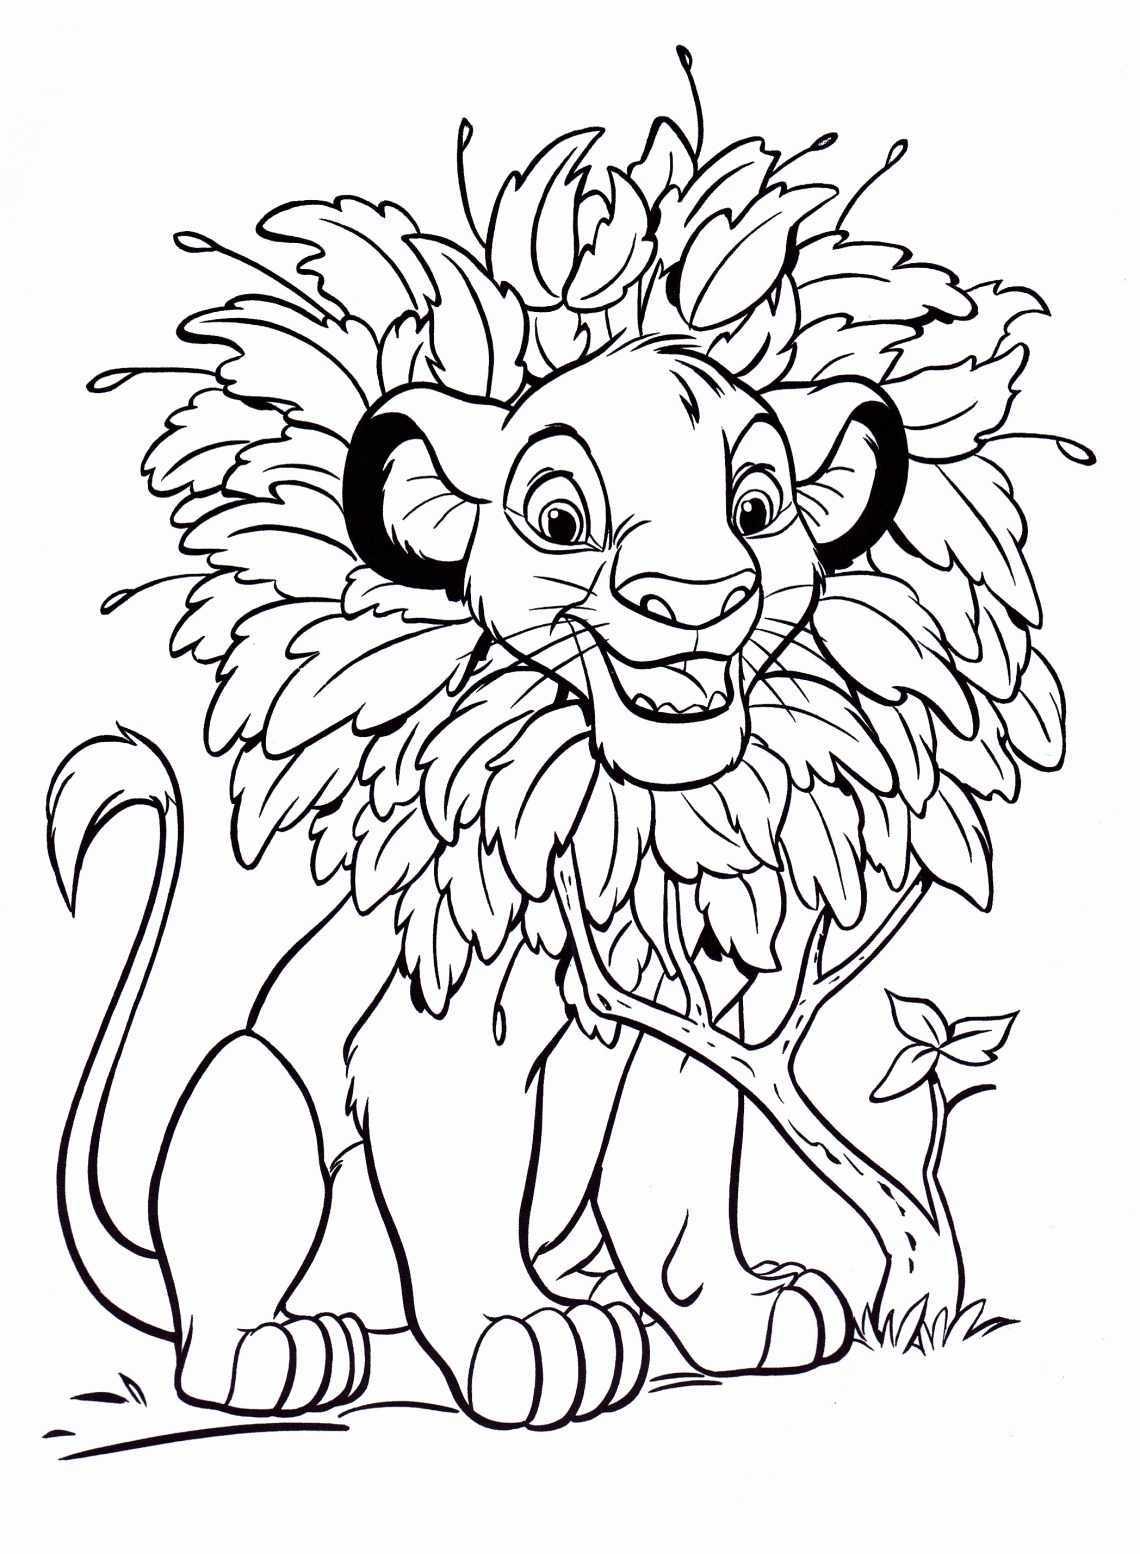 Walt Disney Coloring Pages - Simba - Walt Disney ...   colouring pages disney characters